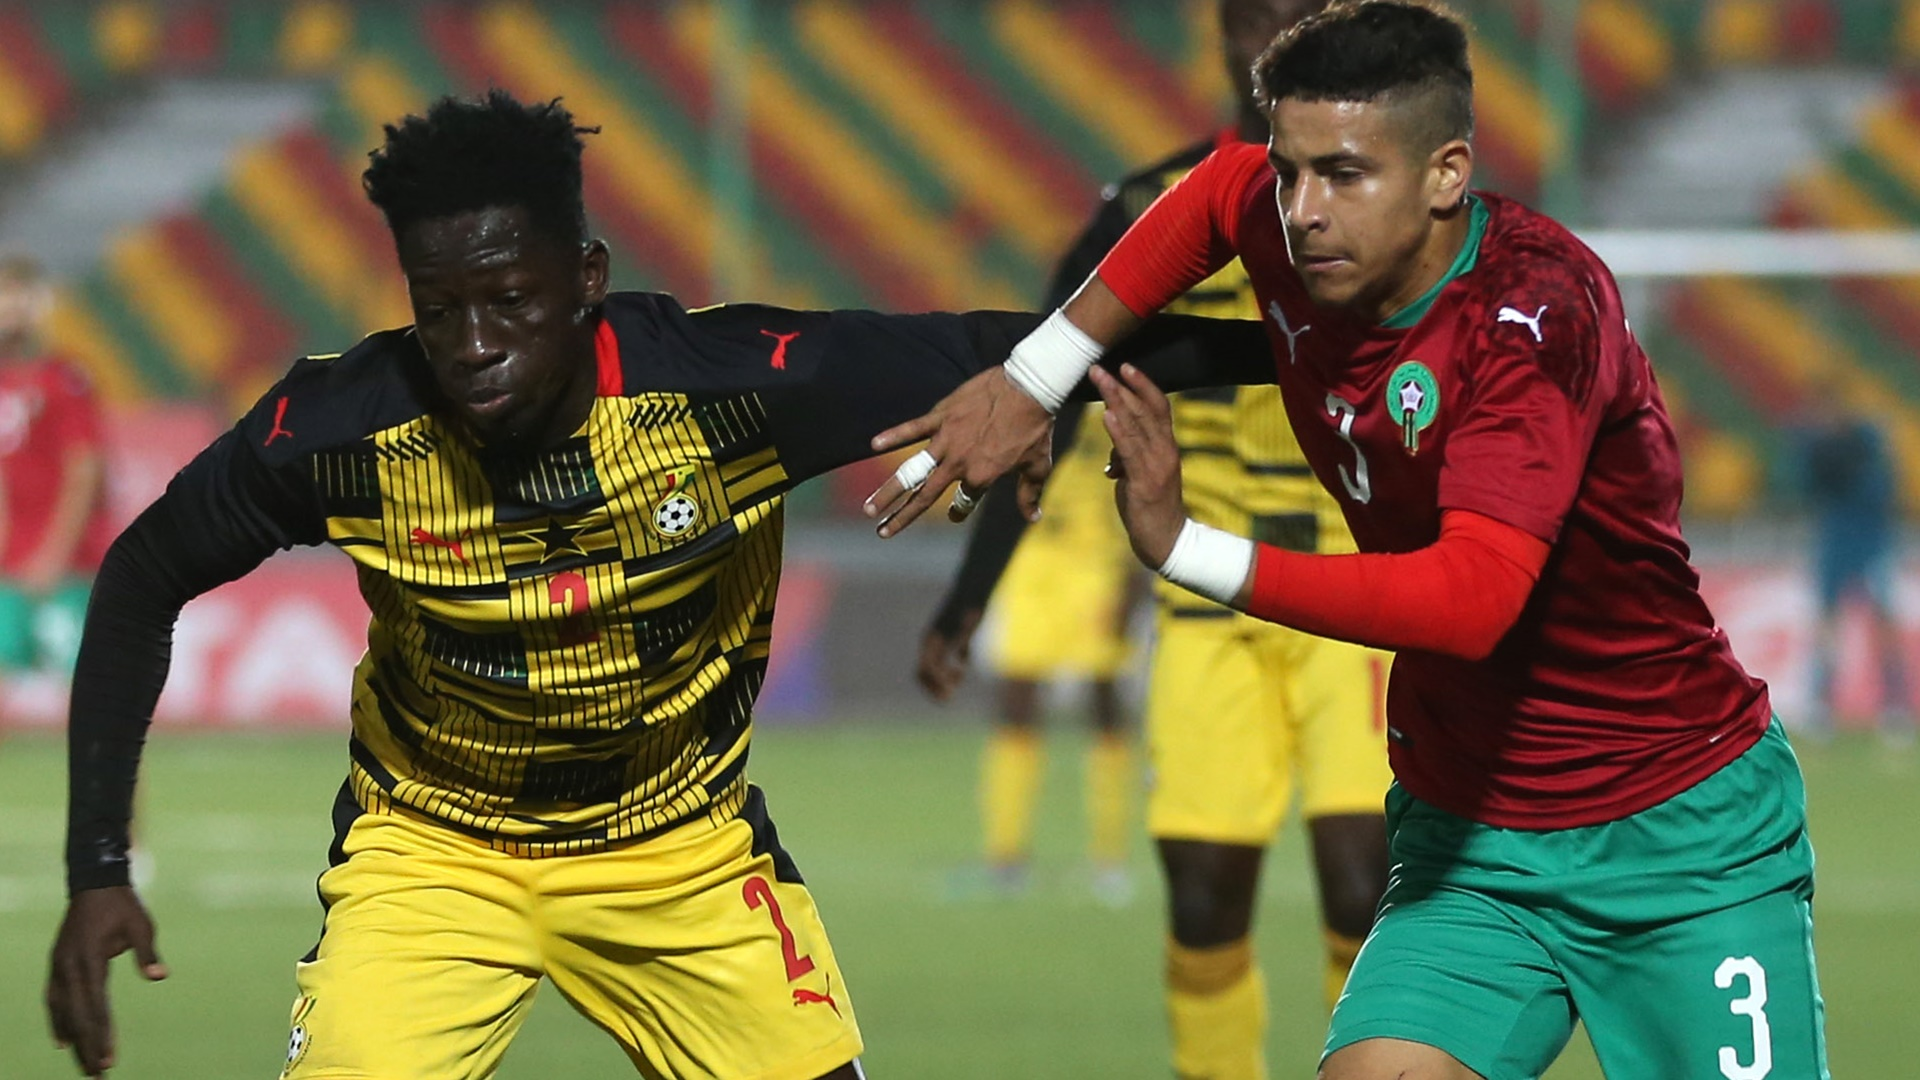 U20 Afcon: How Zito inspired Ghana win over Cameroon with non-existent World Cup qualification talk